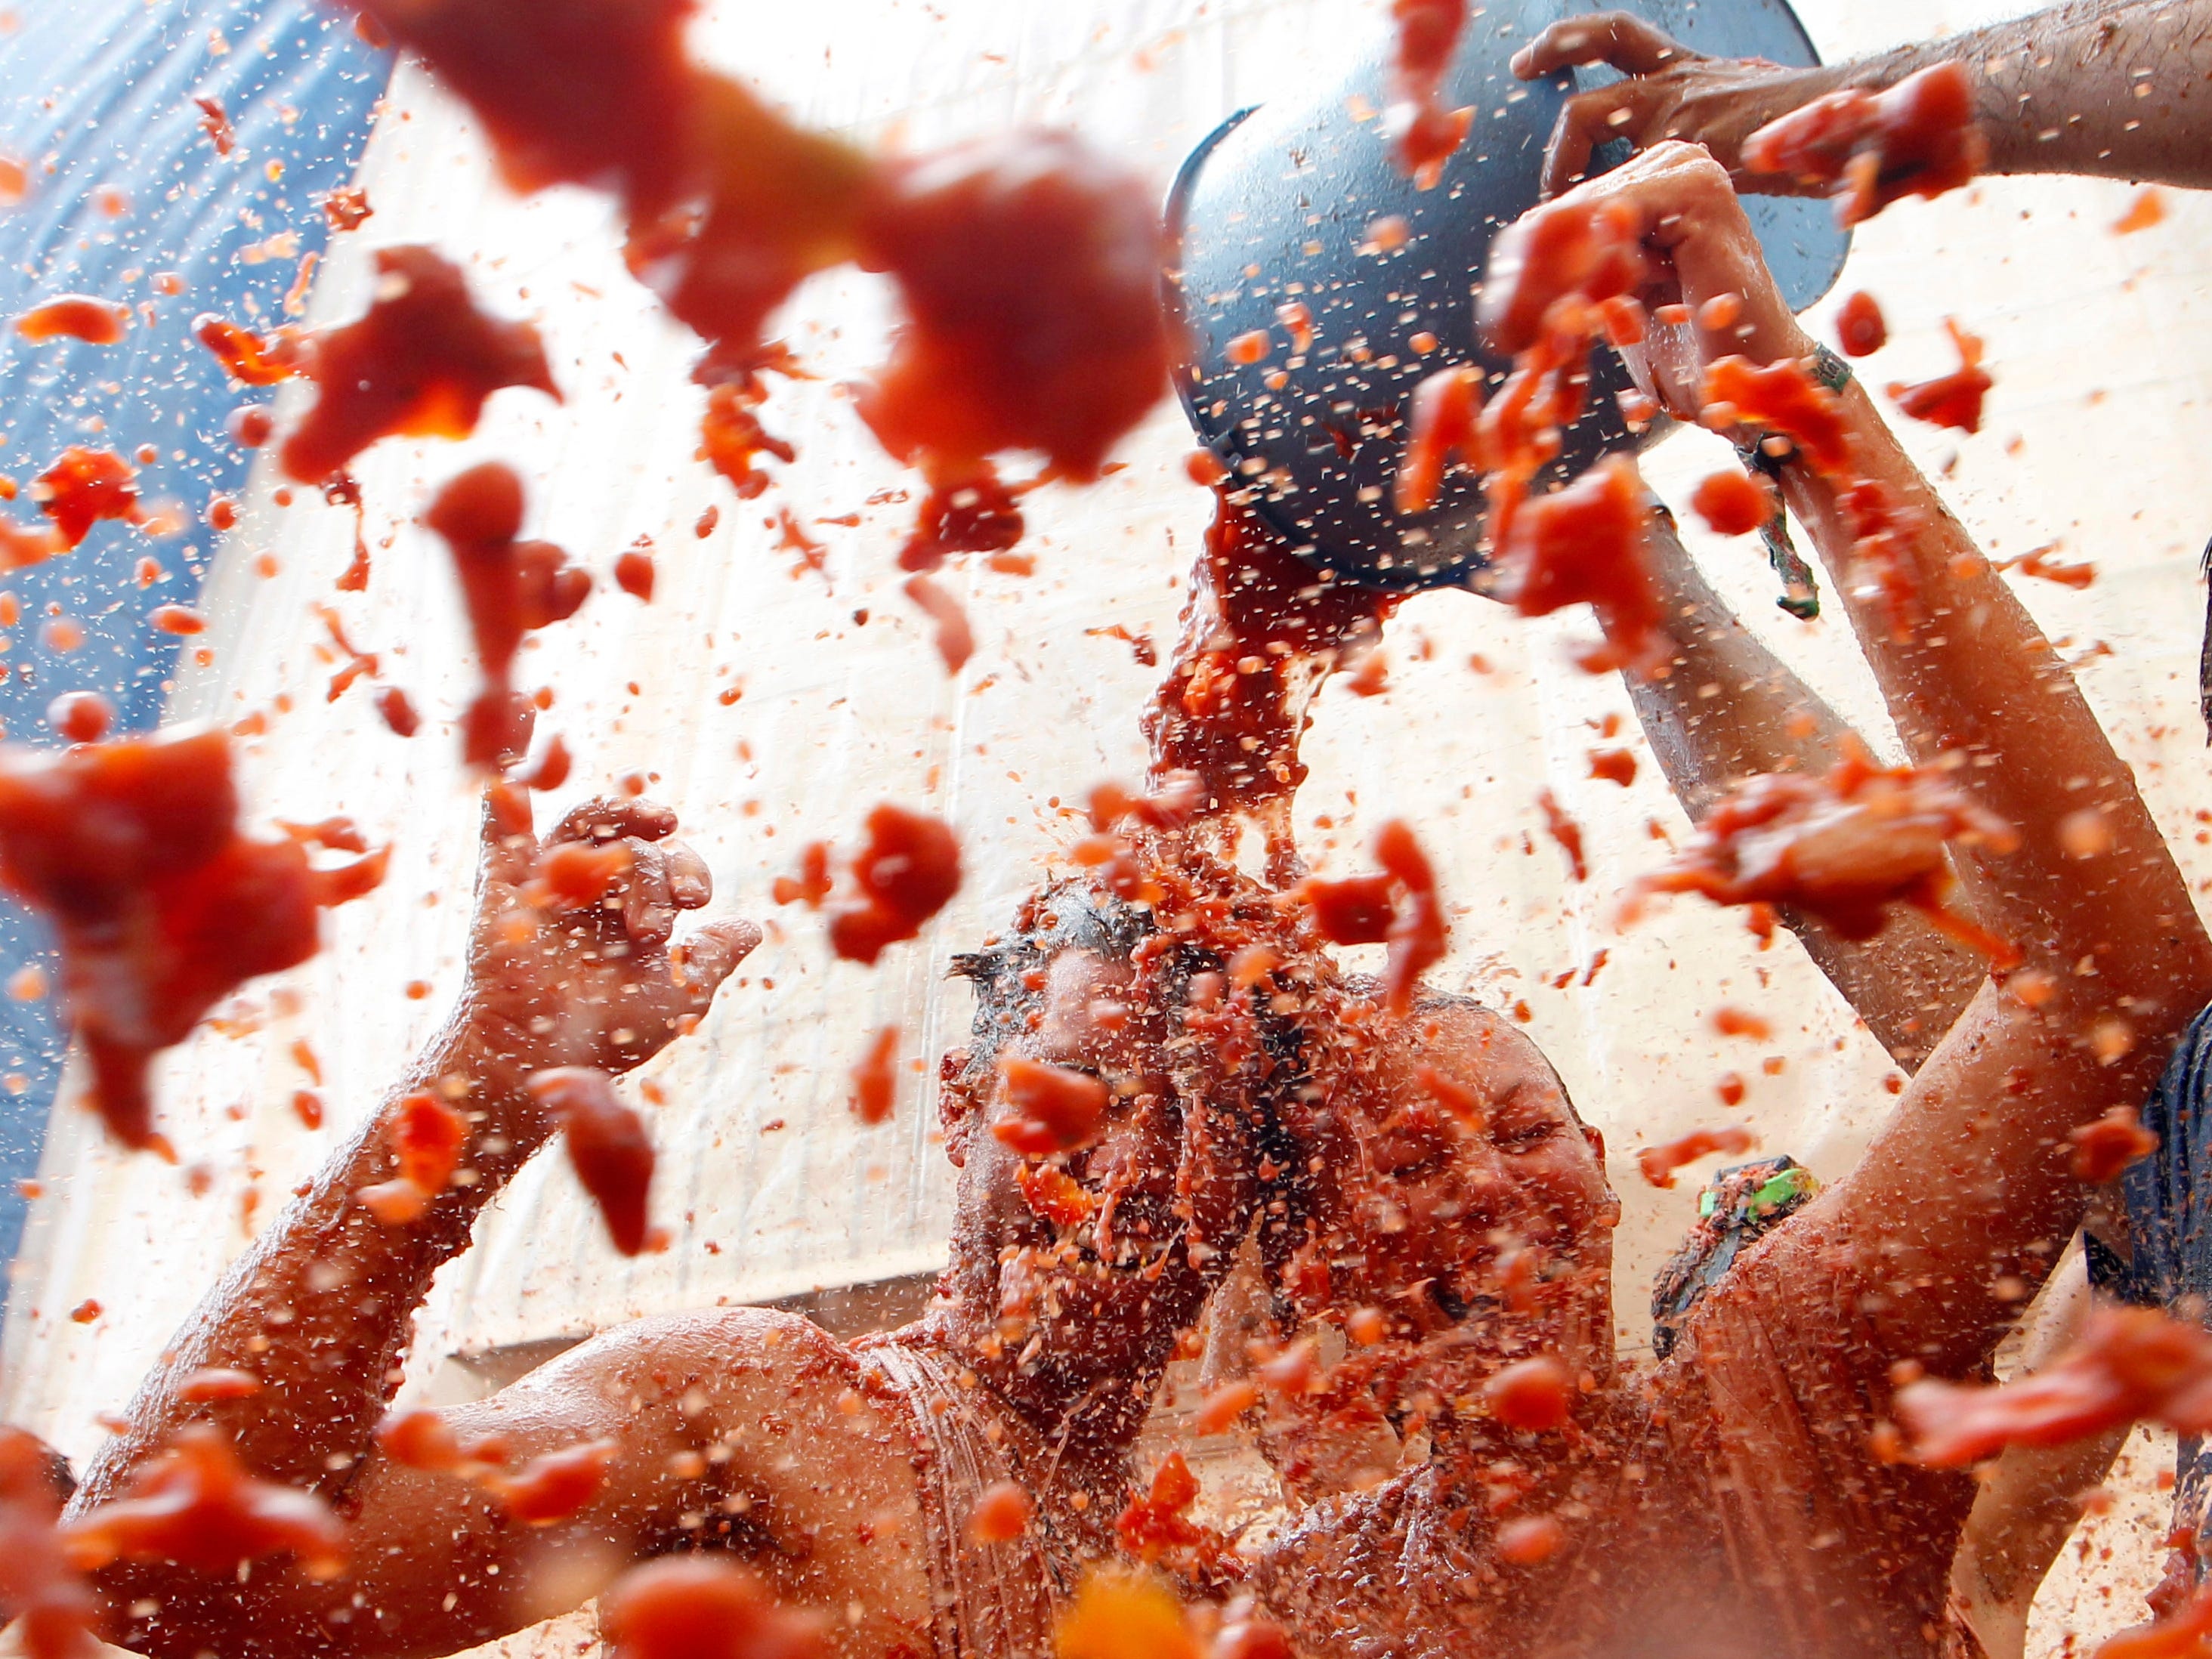 Participants throw tomatoes at each other during the annual Tomatina in Bunol, Spain, Aug. 29, 2018.